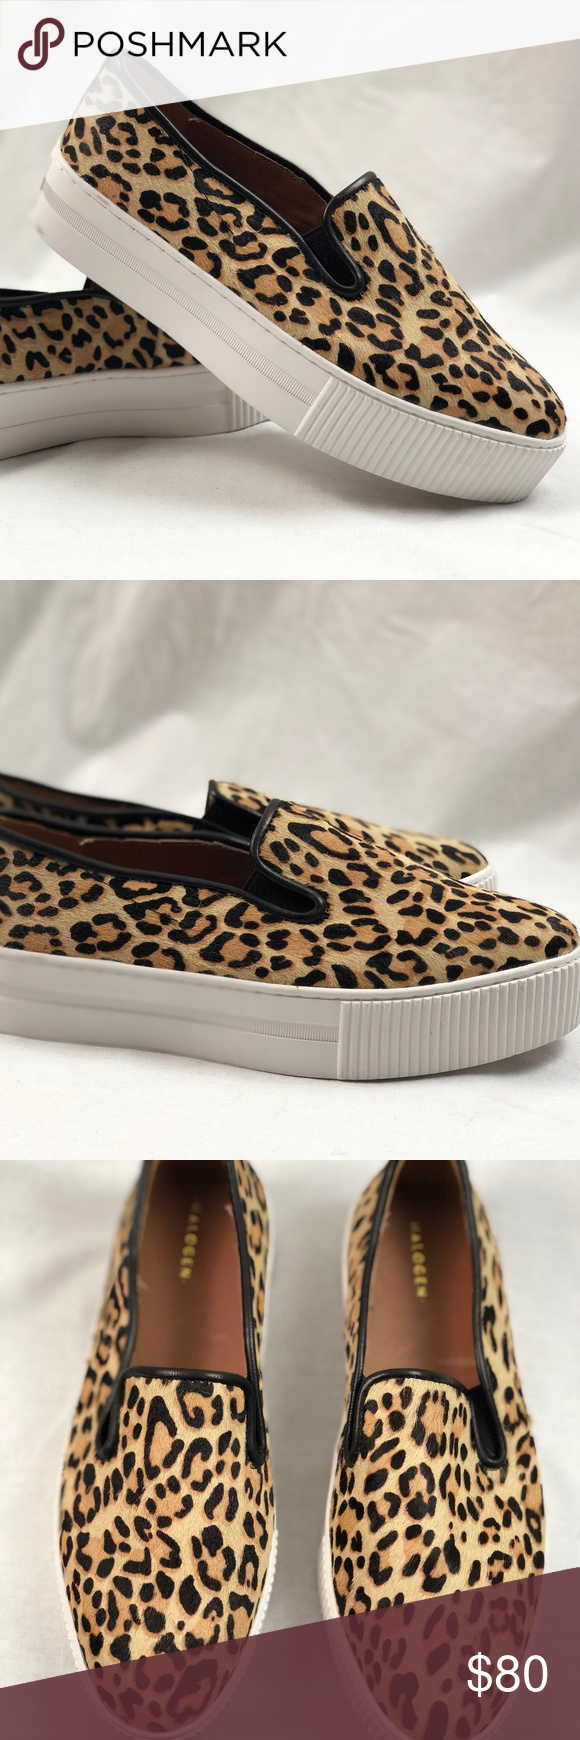 1fb2b9767be Halogen Baylee Platform Leopard Slip-On Sneaker Halogen Baylee Platform  Leopard Haircalf Slip-On Sneaker. Condition  New without box.